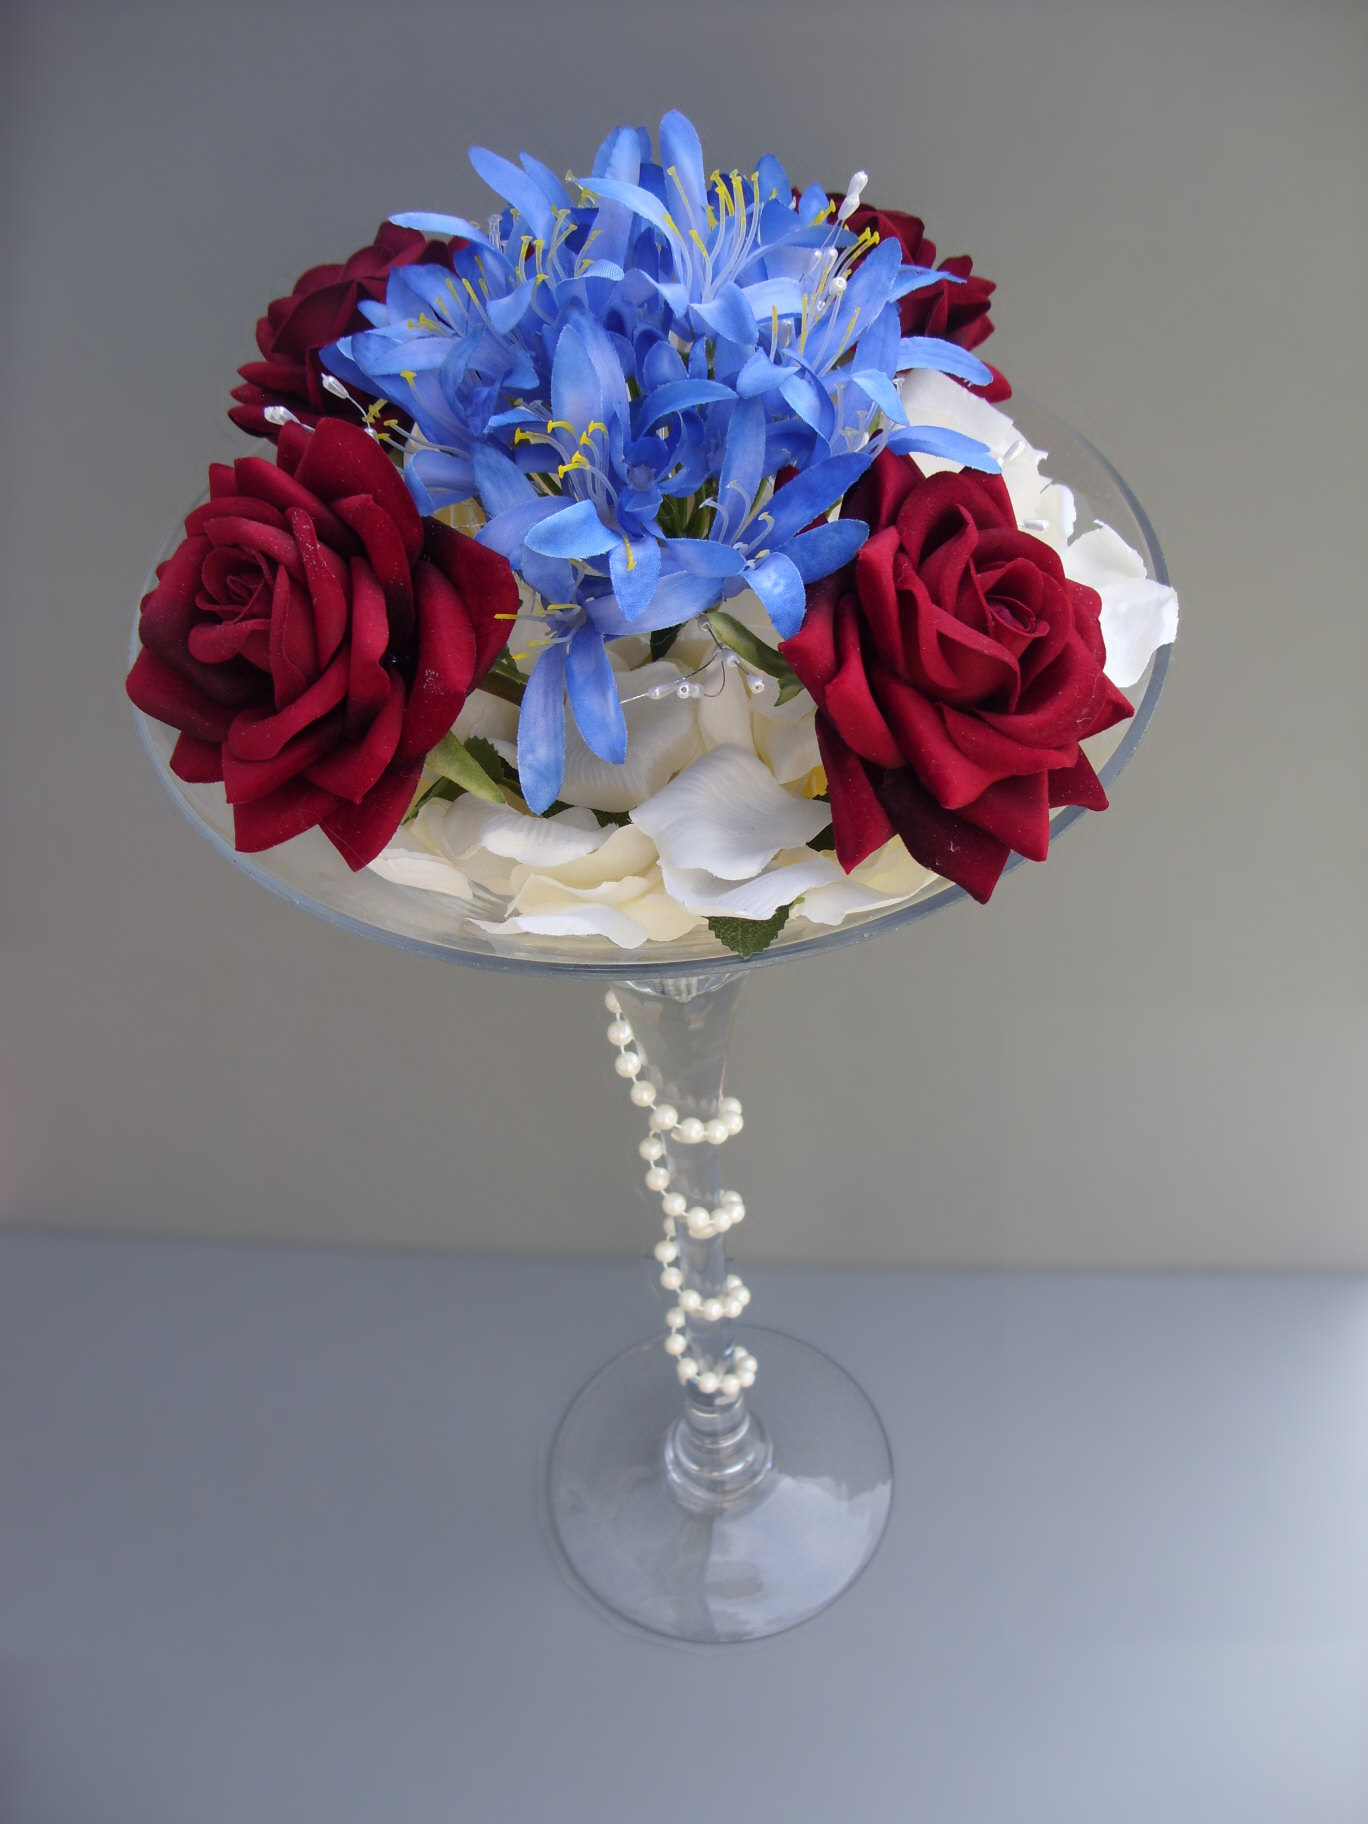 Bridal flowers simply flowers by julie martini vase red roses blue agapanthus 4400 floridaeventfo Images